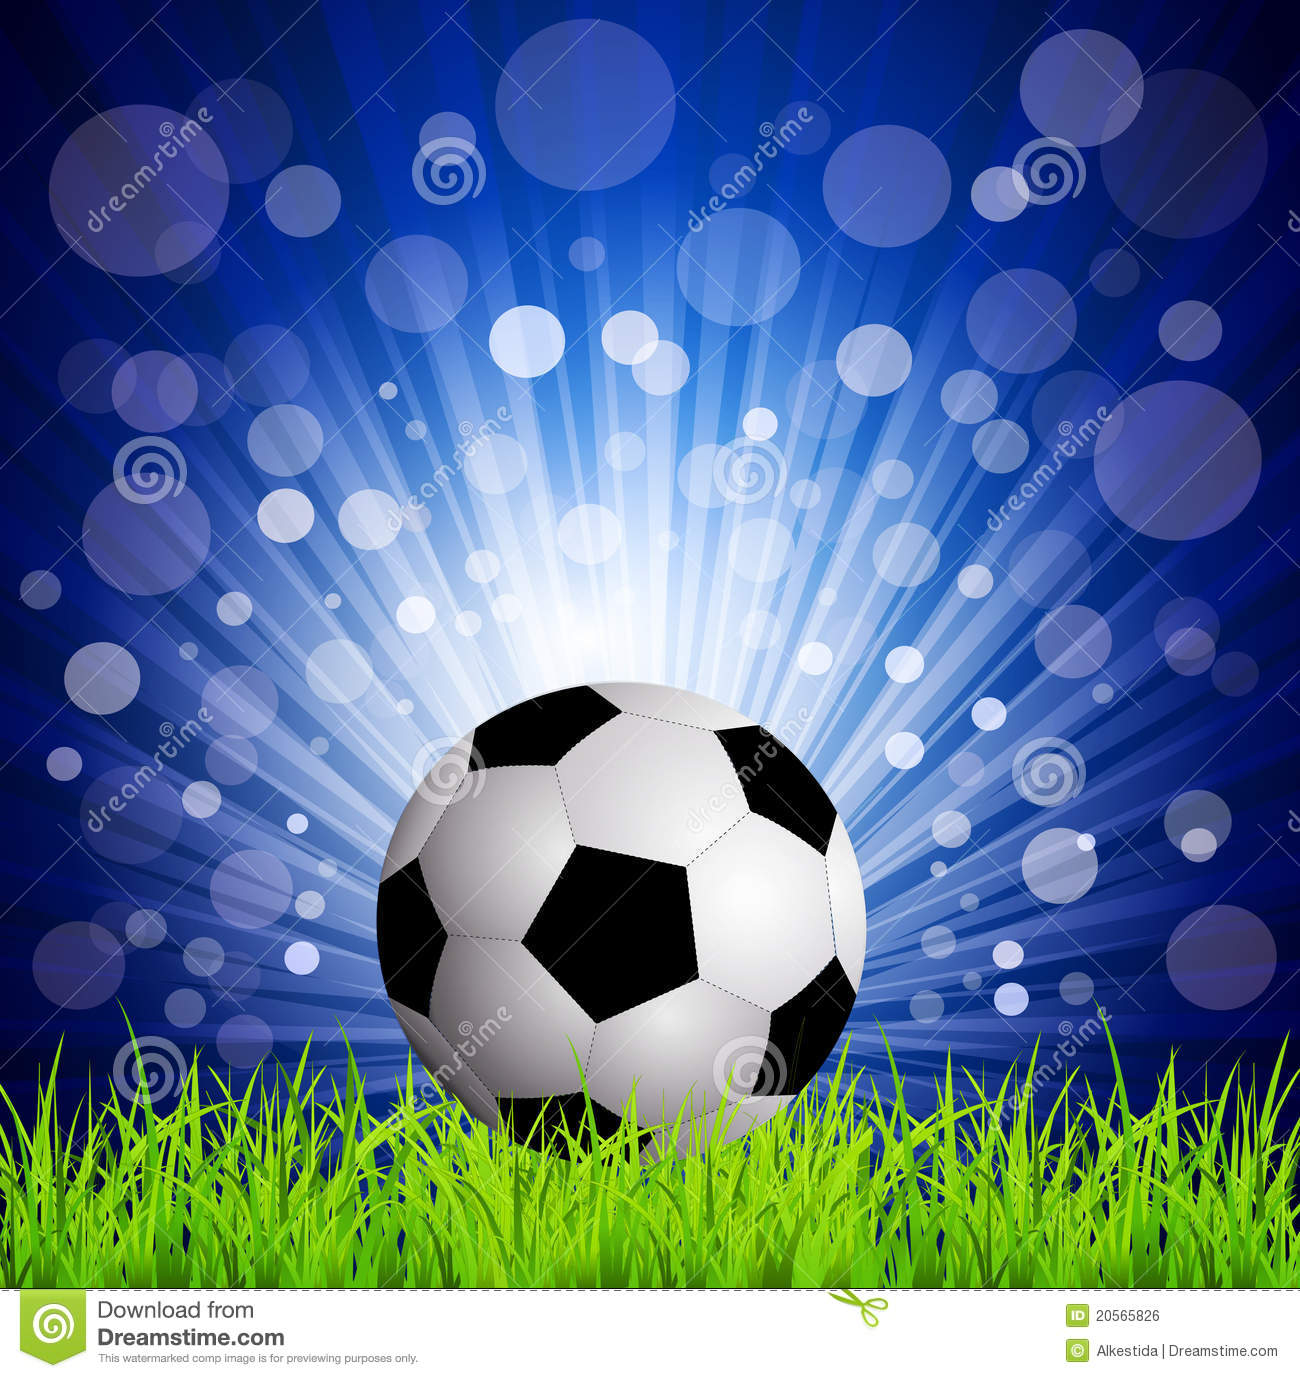 Soccer Football On Grass, On A Blue Background Royalty Free Stock ...